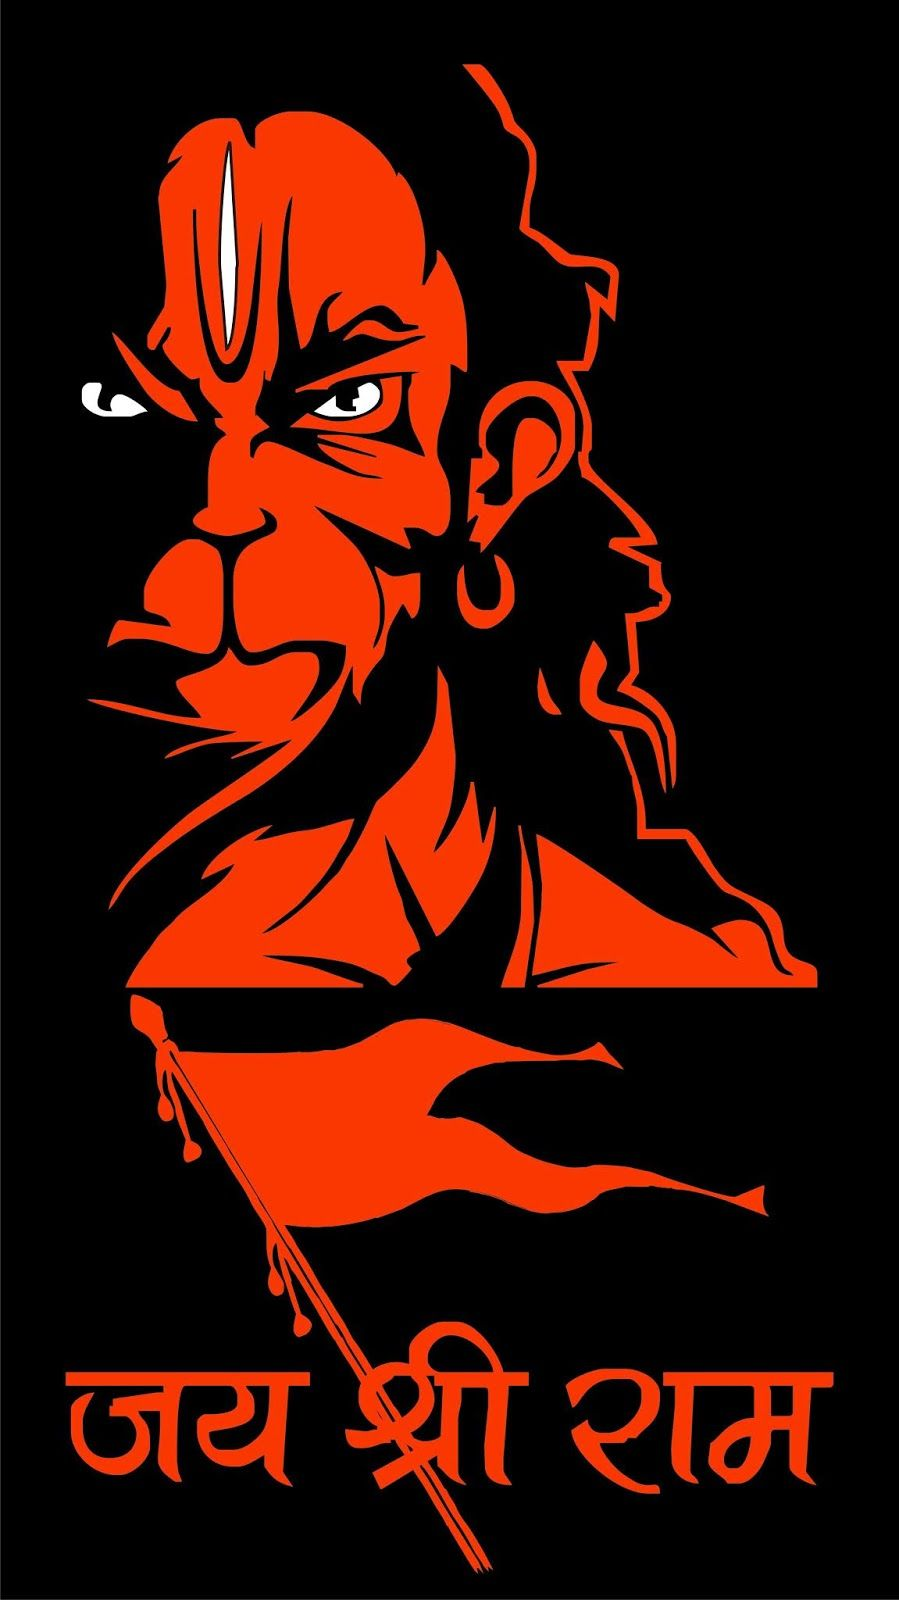 Lord Hanuman Hd Image Download Jai Hanuman Mobile Wallpaper For Your Android Iphone Wallpaper Or Ipad T In 2020 Hanuman Wallpaper Jai Hanuman Lord Hanuman Wallpapers